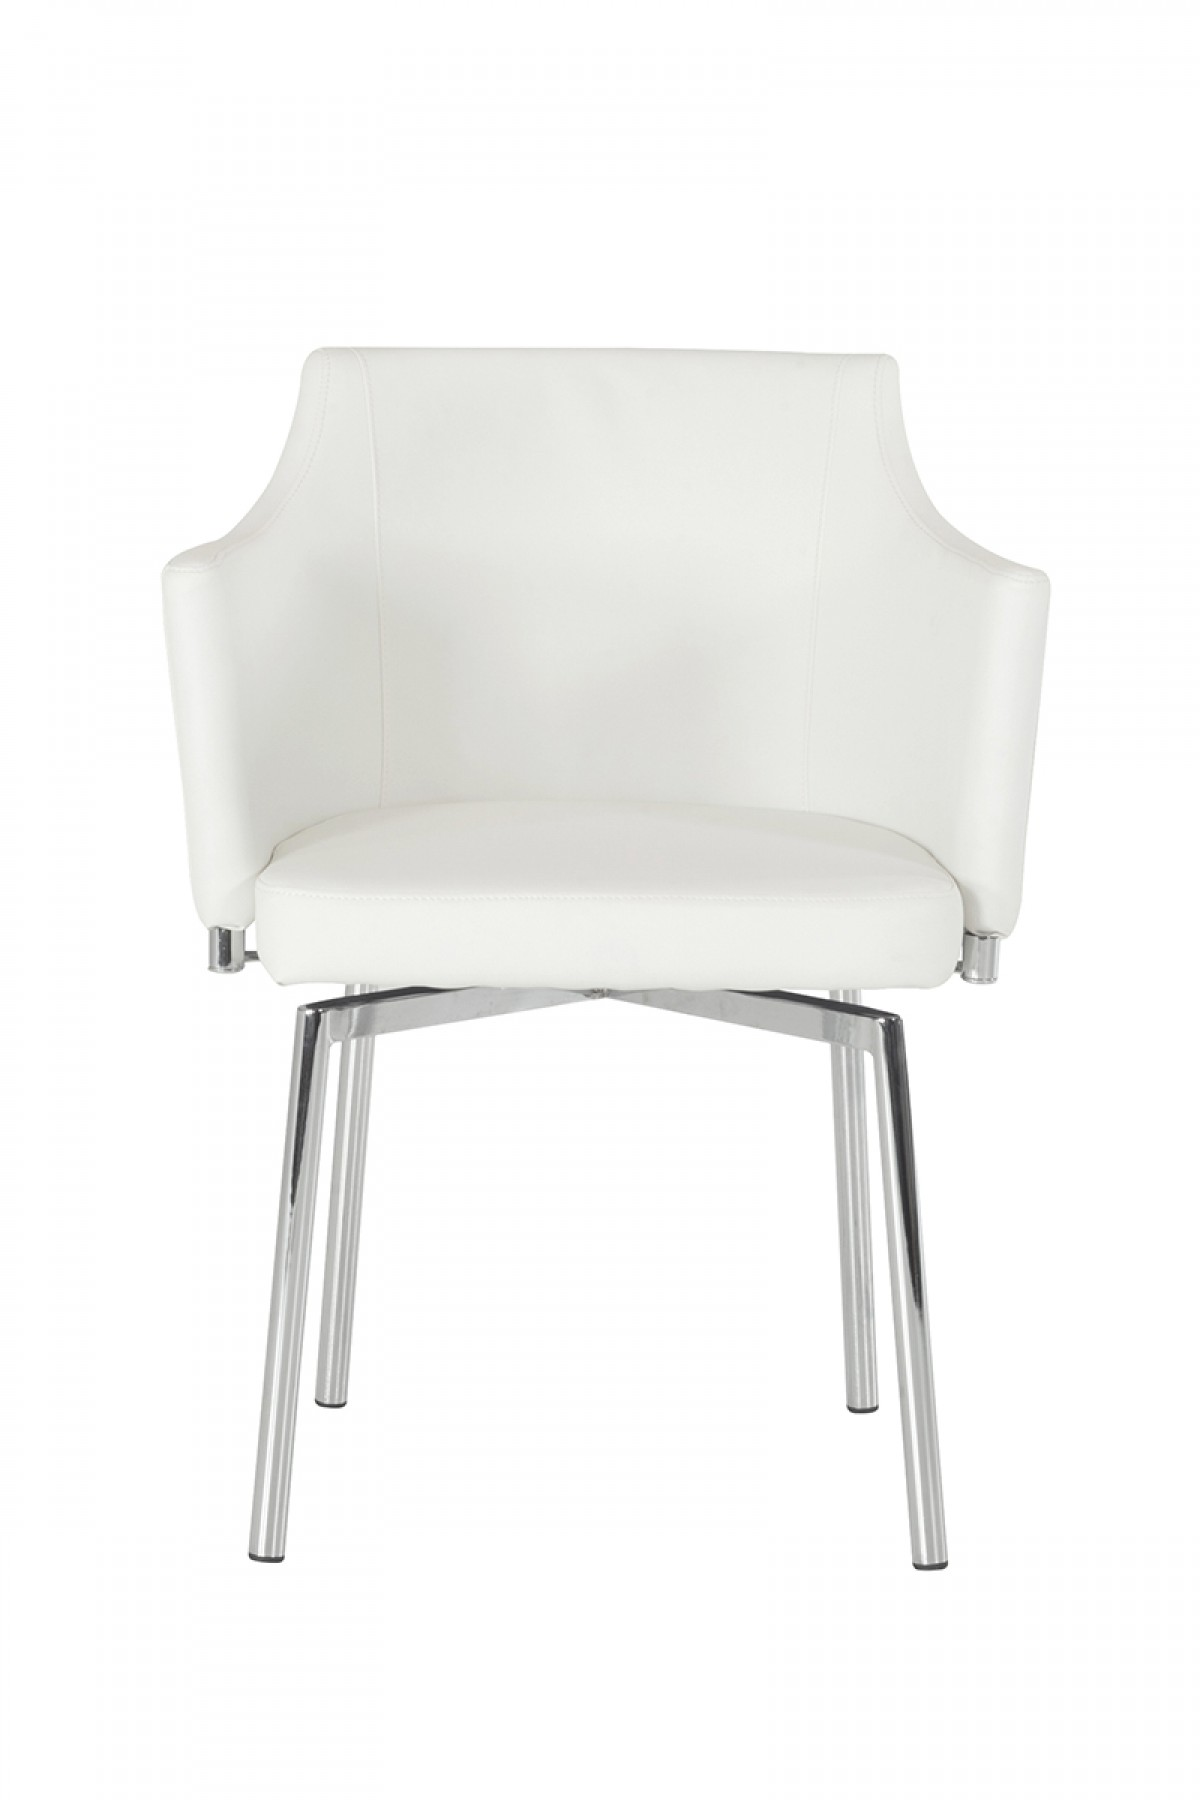 com dining decobizz outdoor chair chairs white modern design